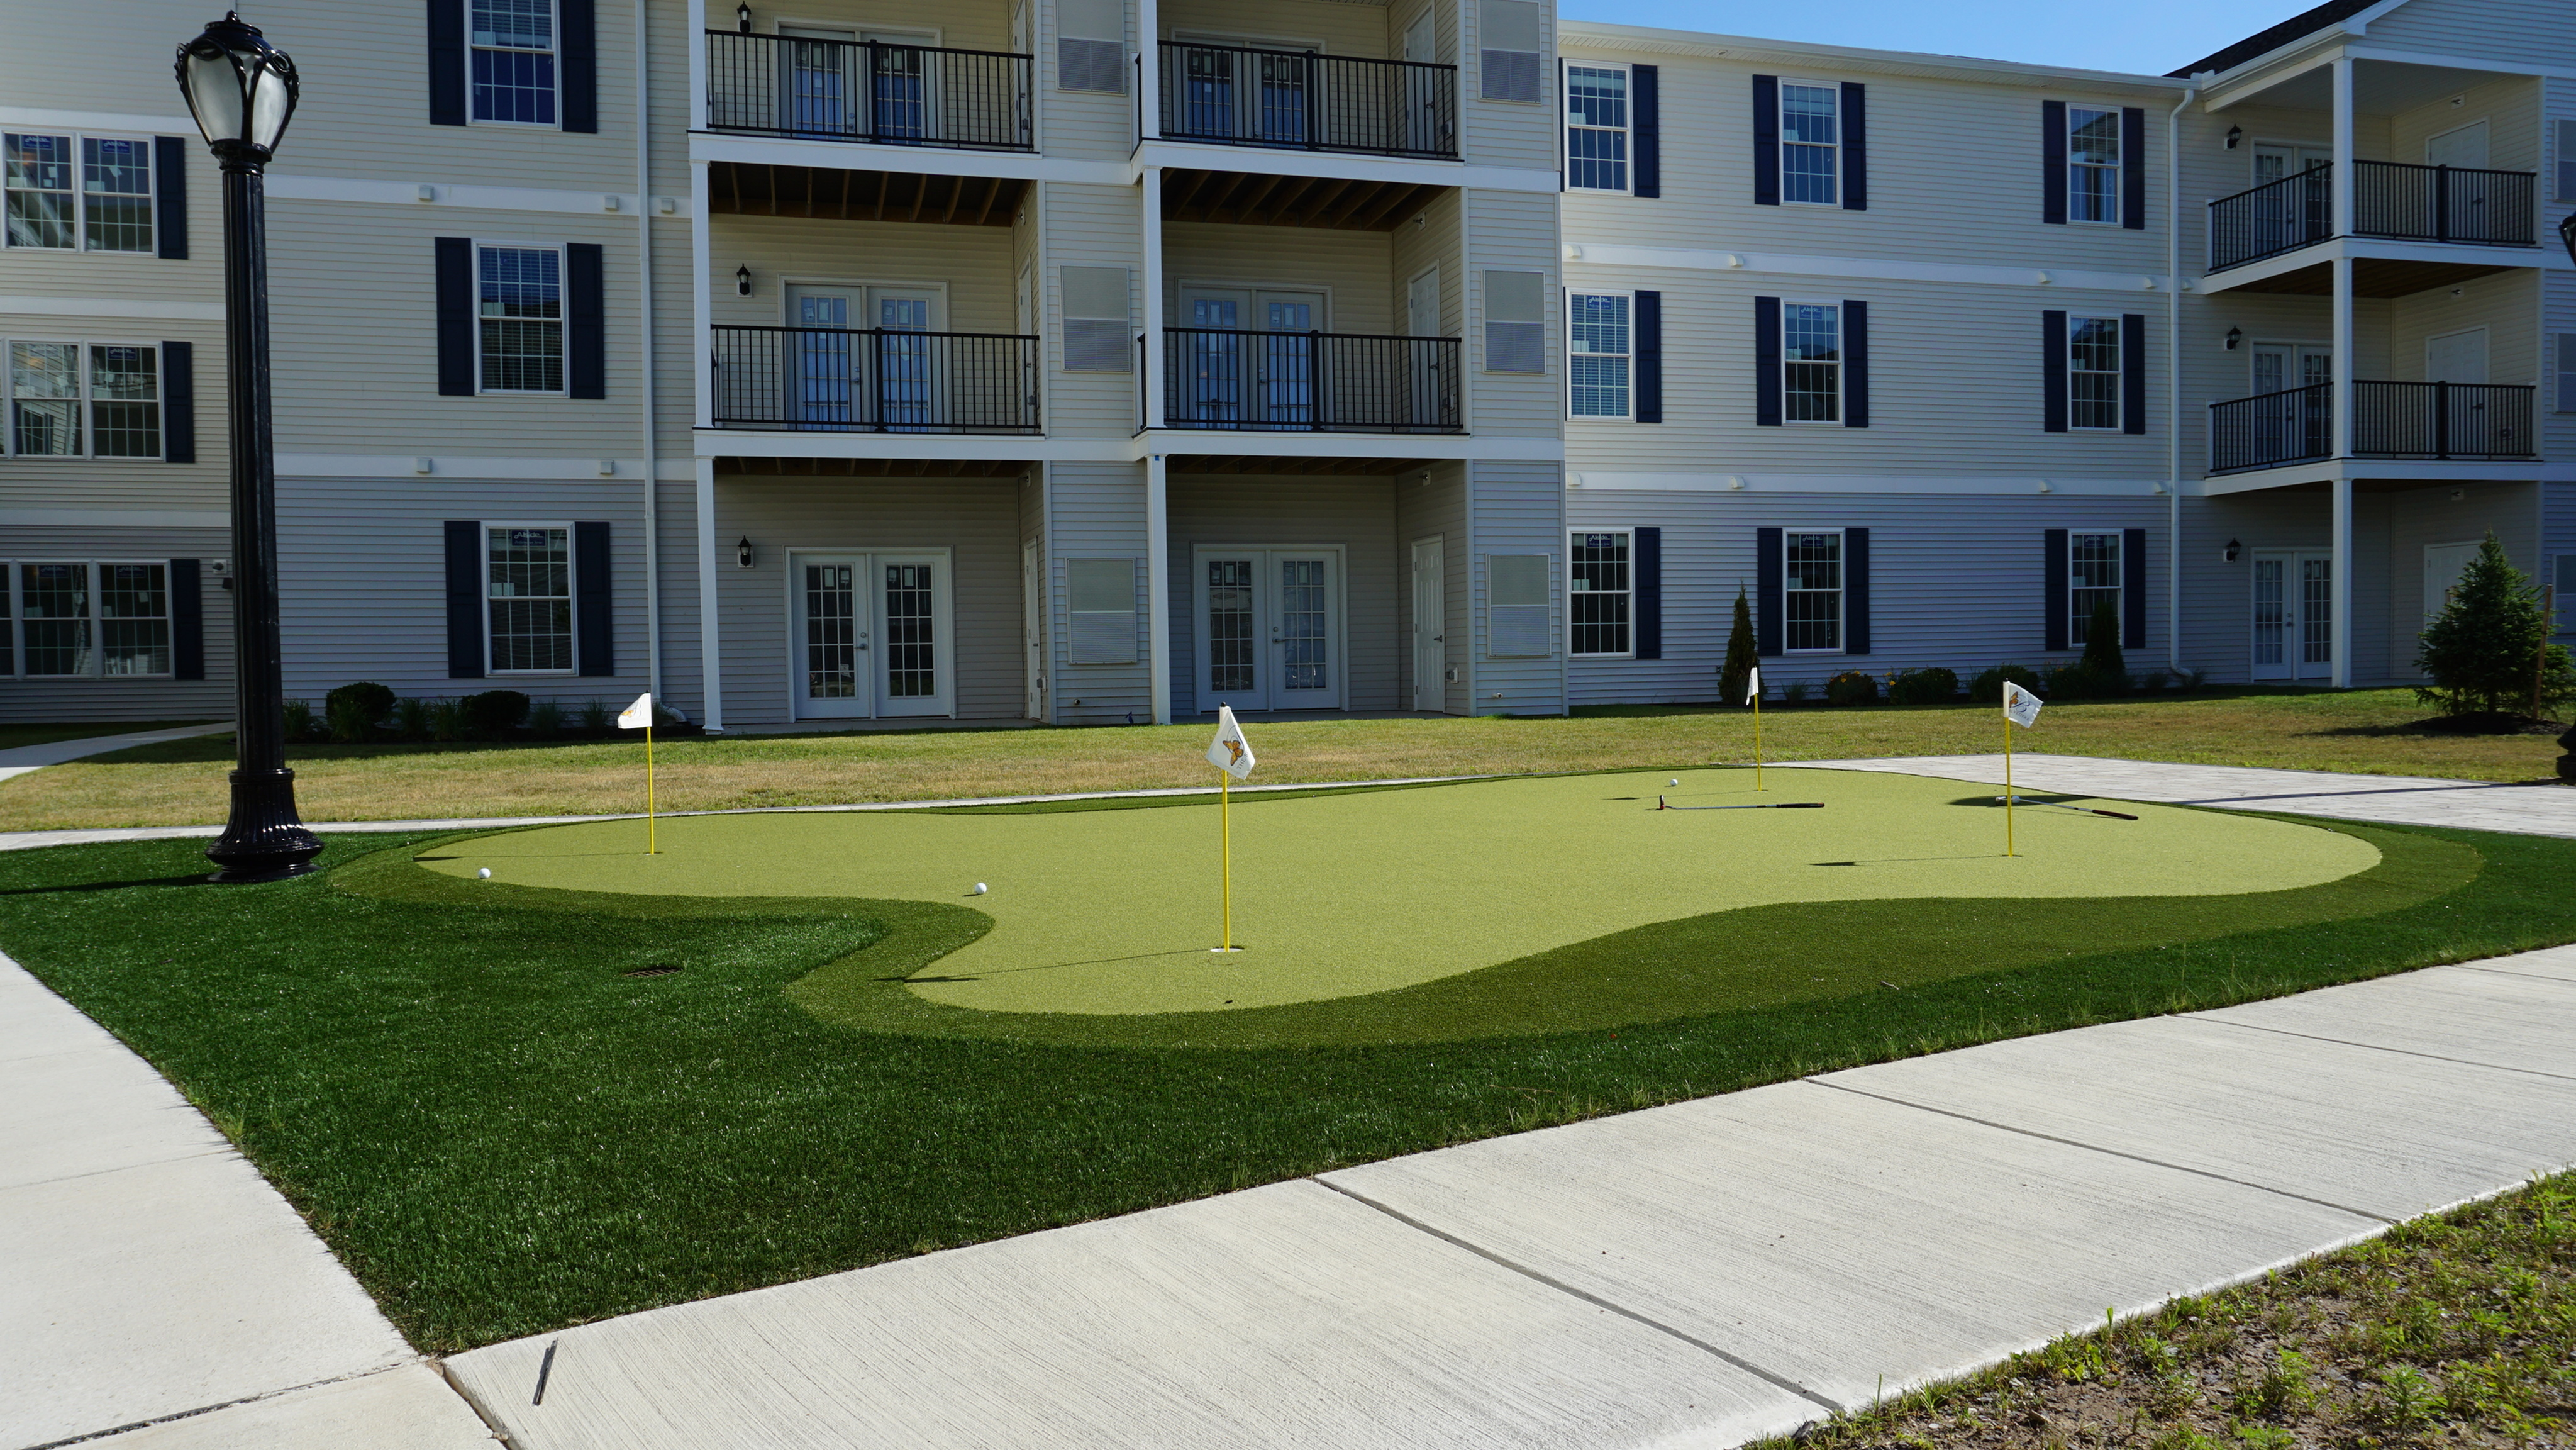 The Belvedere Apartments, exterior, outdoor putting green, building view with balconies, walkways, street lamp